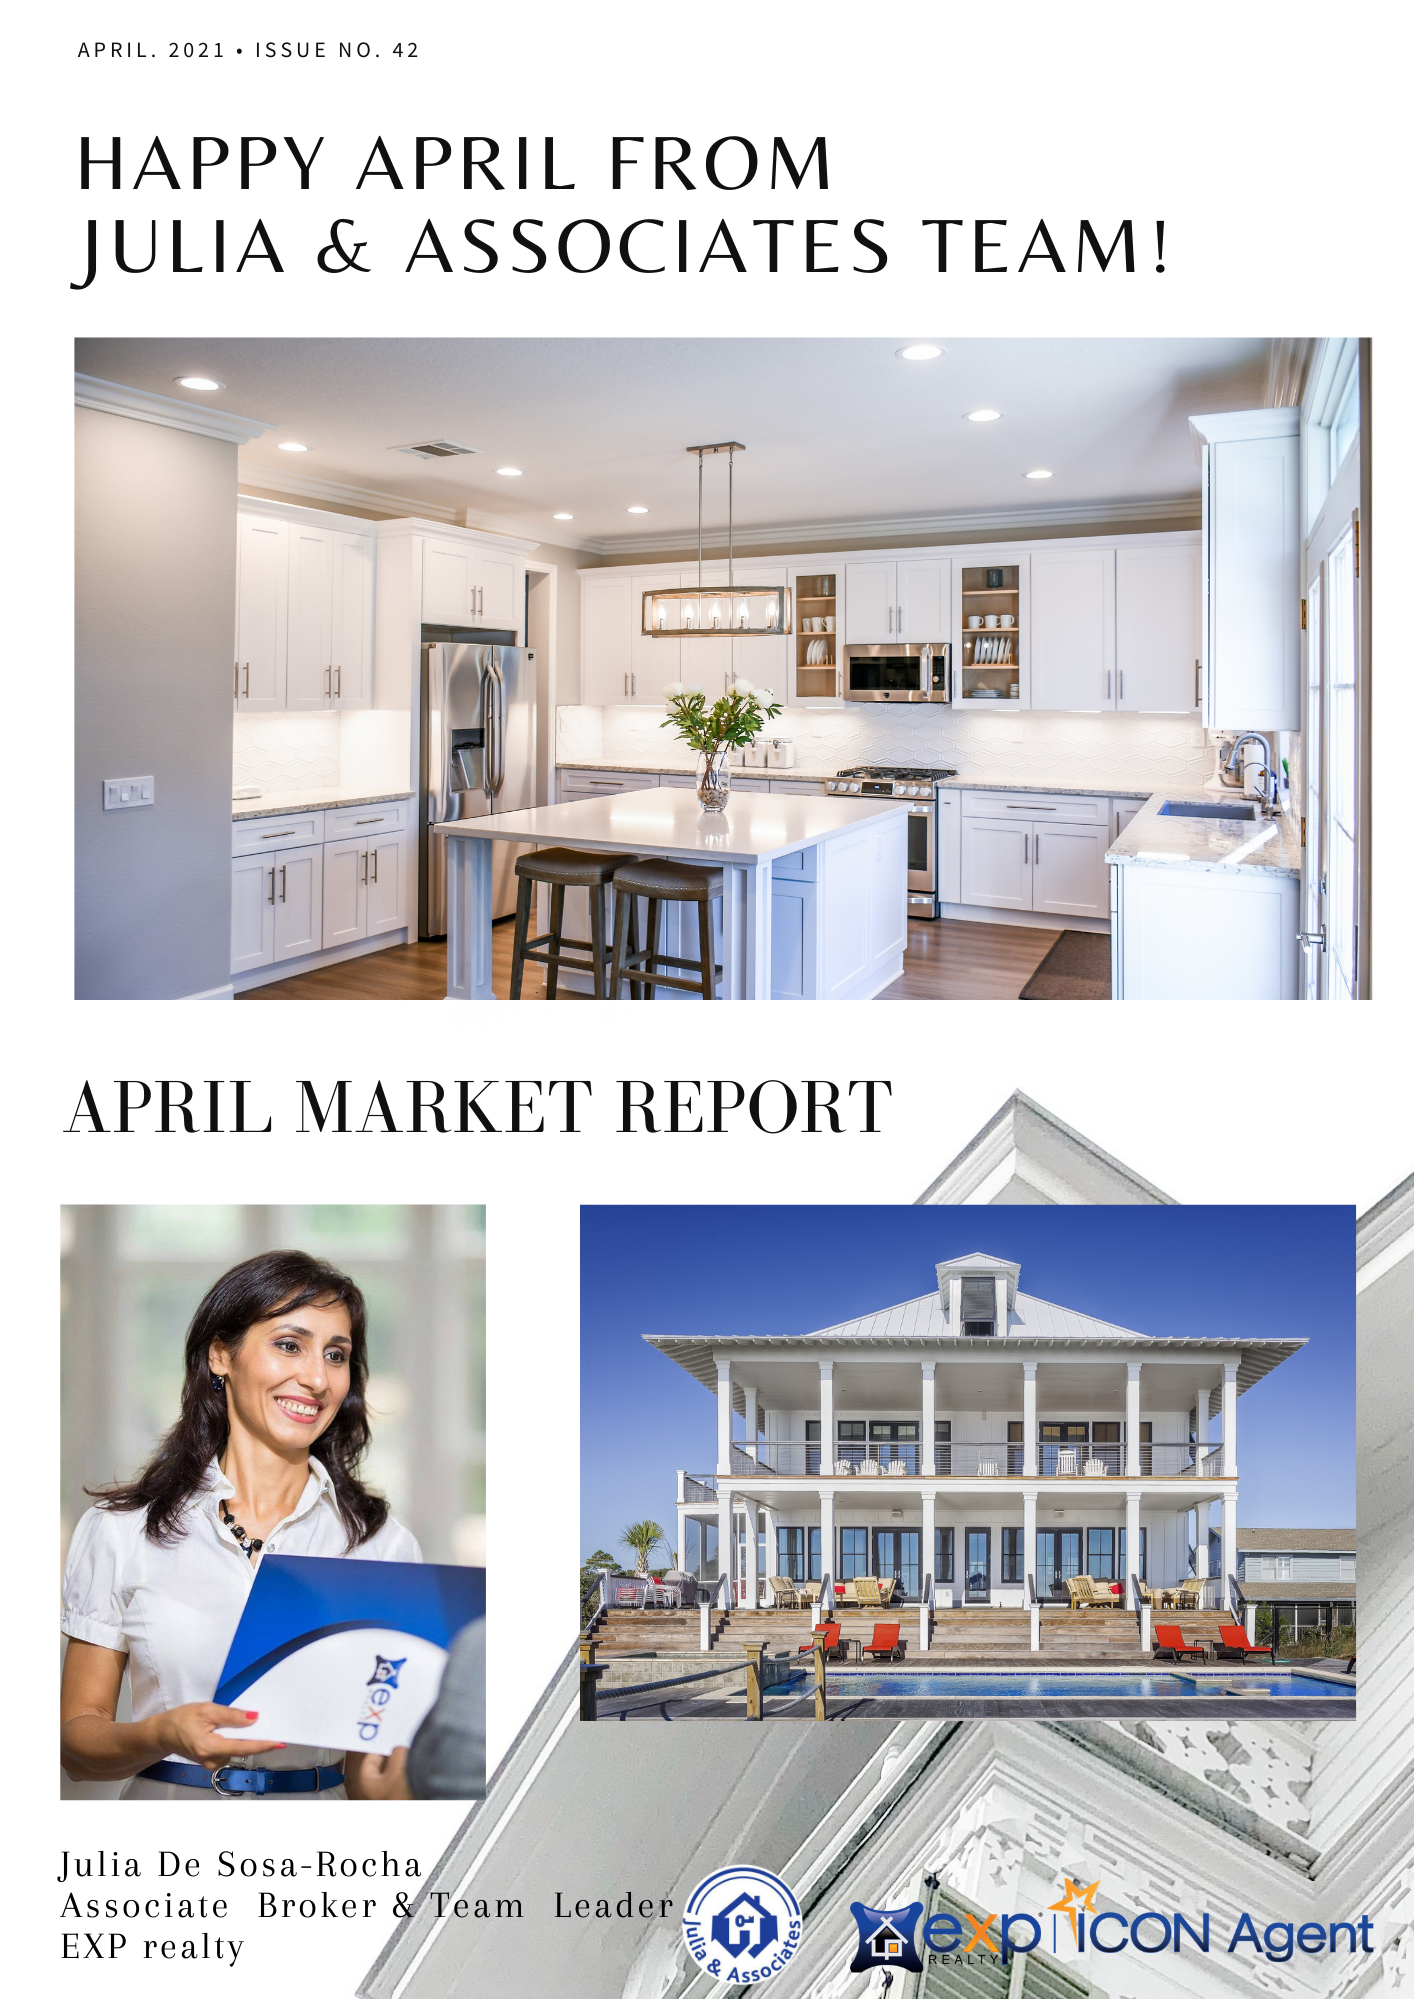 April 2021 Market Report from Julia and Associates Team